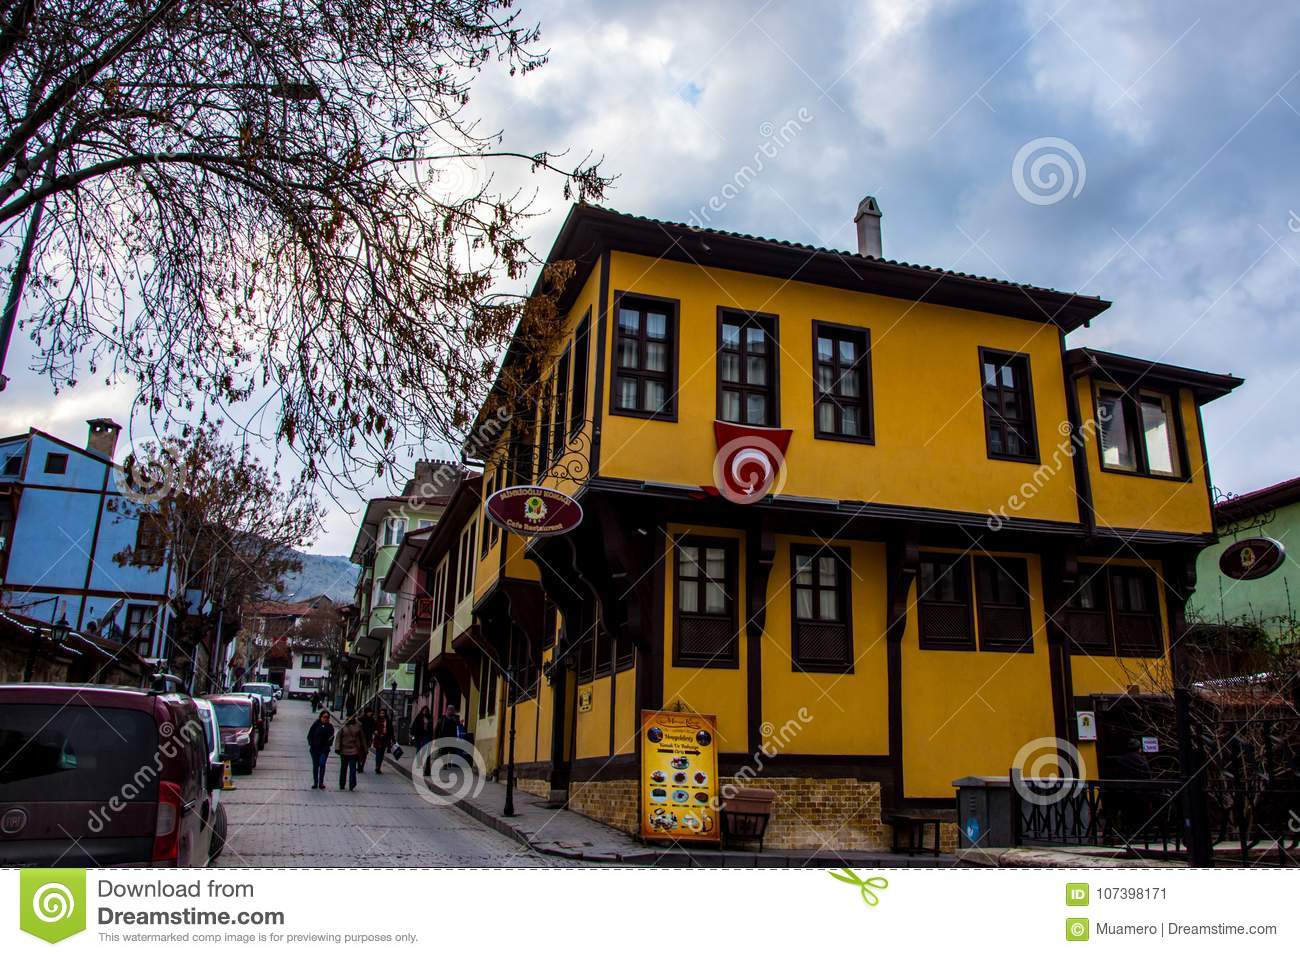 Ottoman houses street view in the city of Afyon